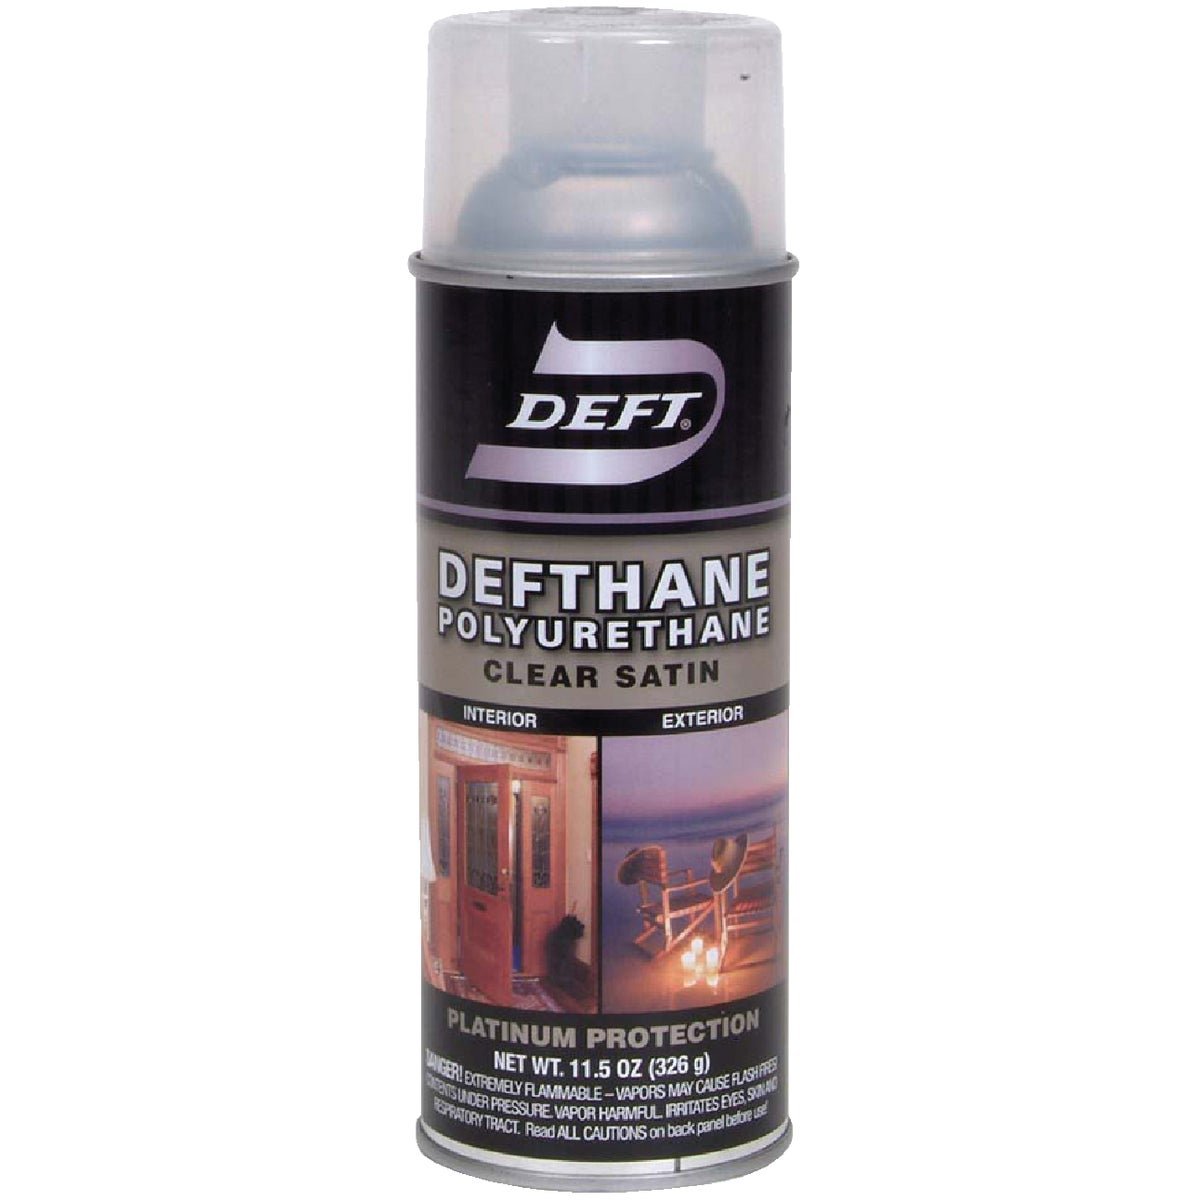 SATIN DEFTHANE SPRAY - DFT025/54 by Deft